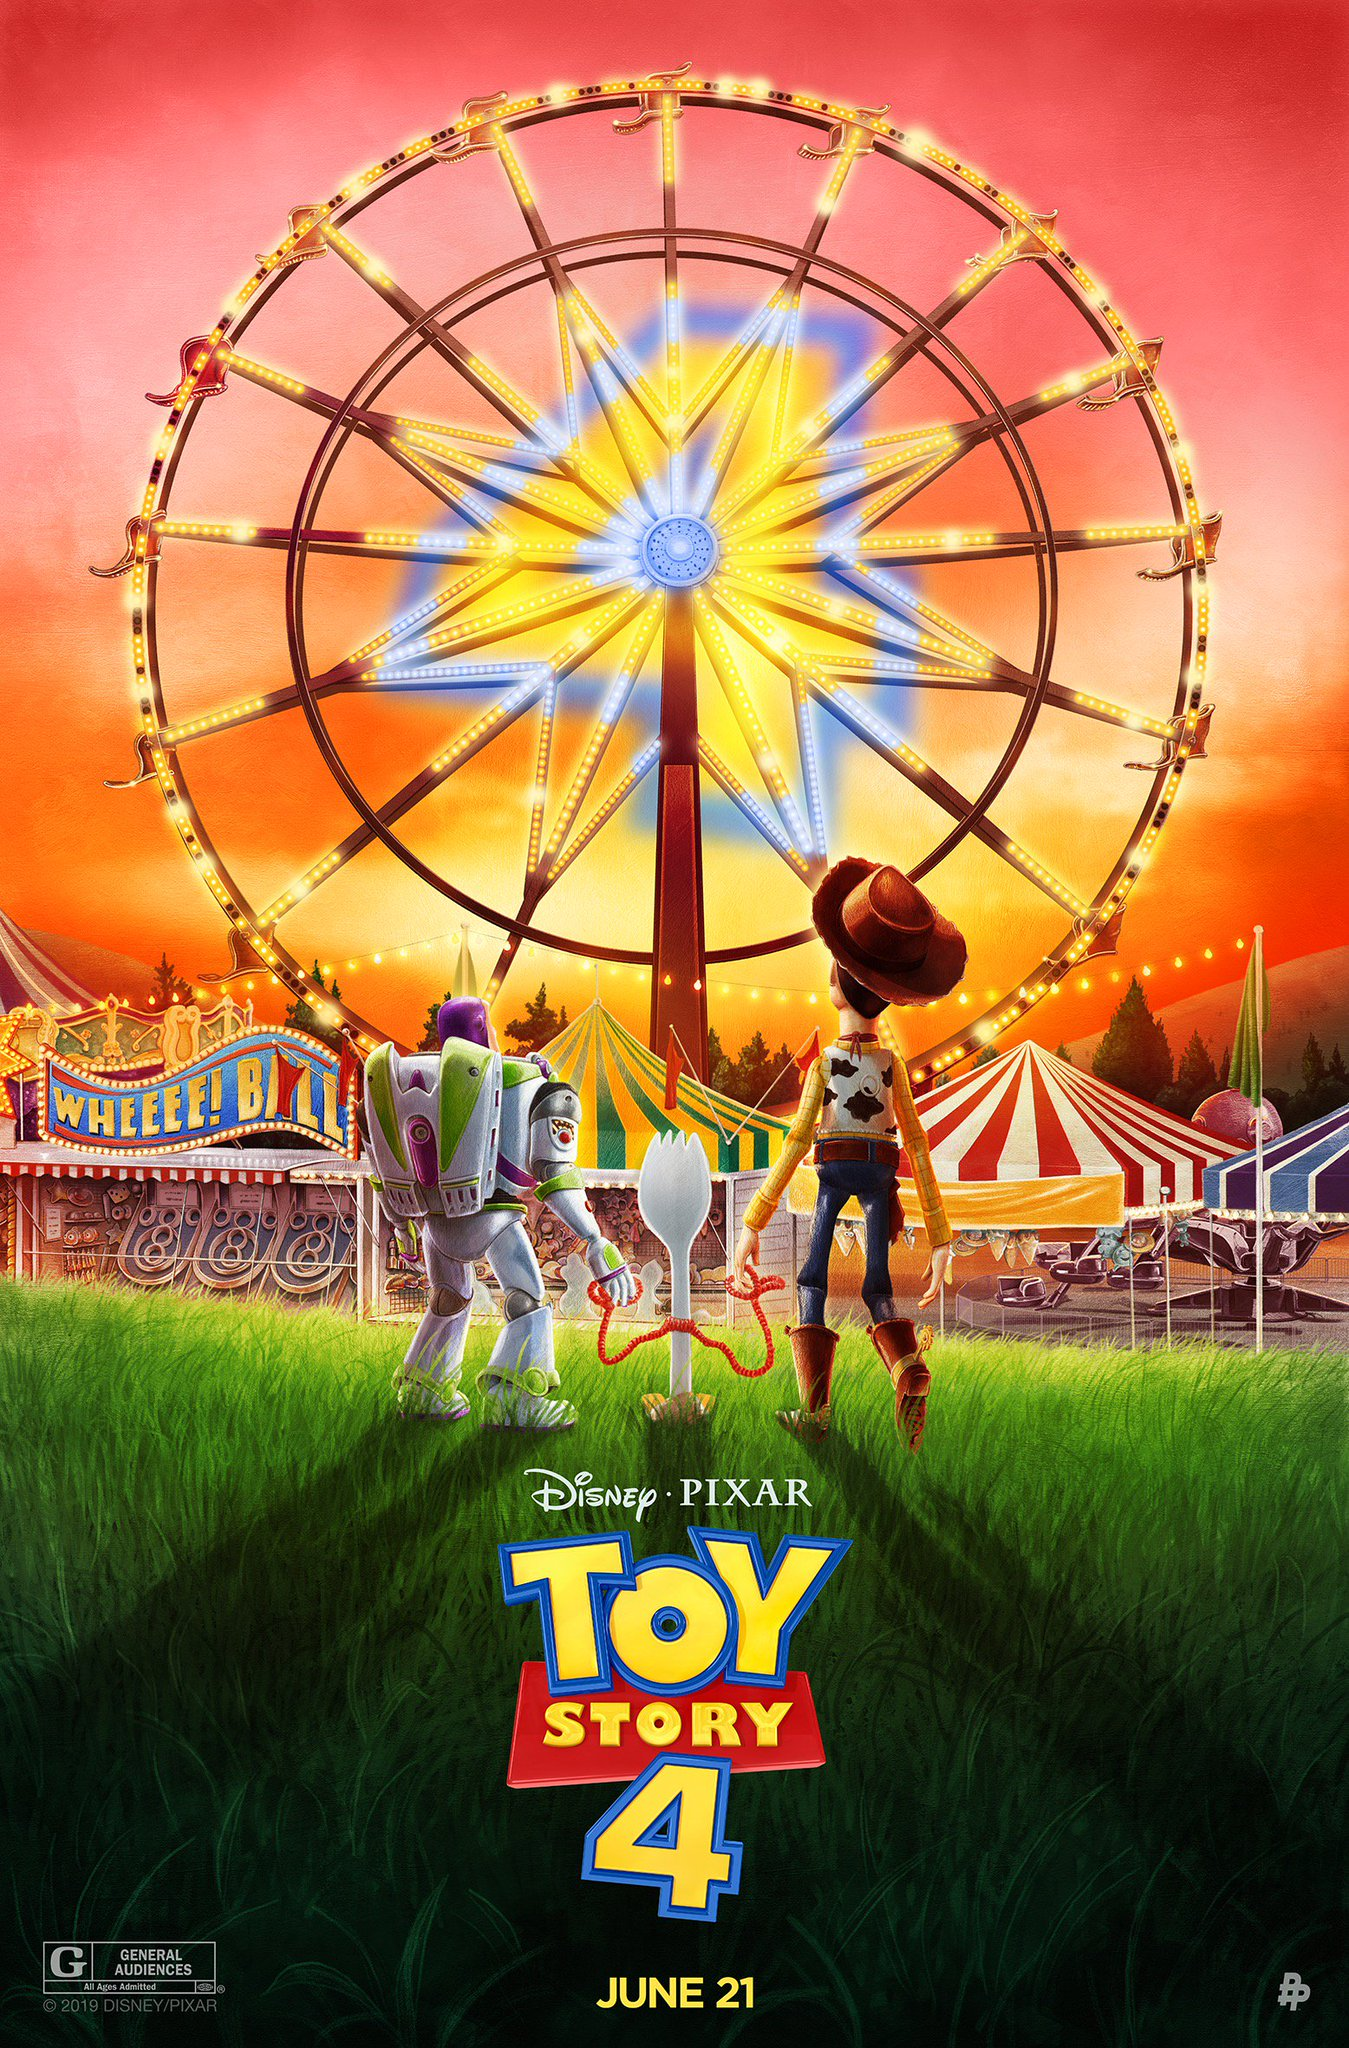 """Toy Story on Twitter: """"Check out these new posters inspired by #ToyStory4!  The toys are back in theaters on June 21. 🎨: @AdStothard, @RhafaelAseo,  @SG_Posters… https://t.co/384yqWPx3q"""""""